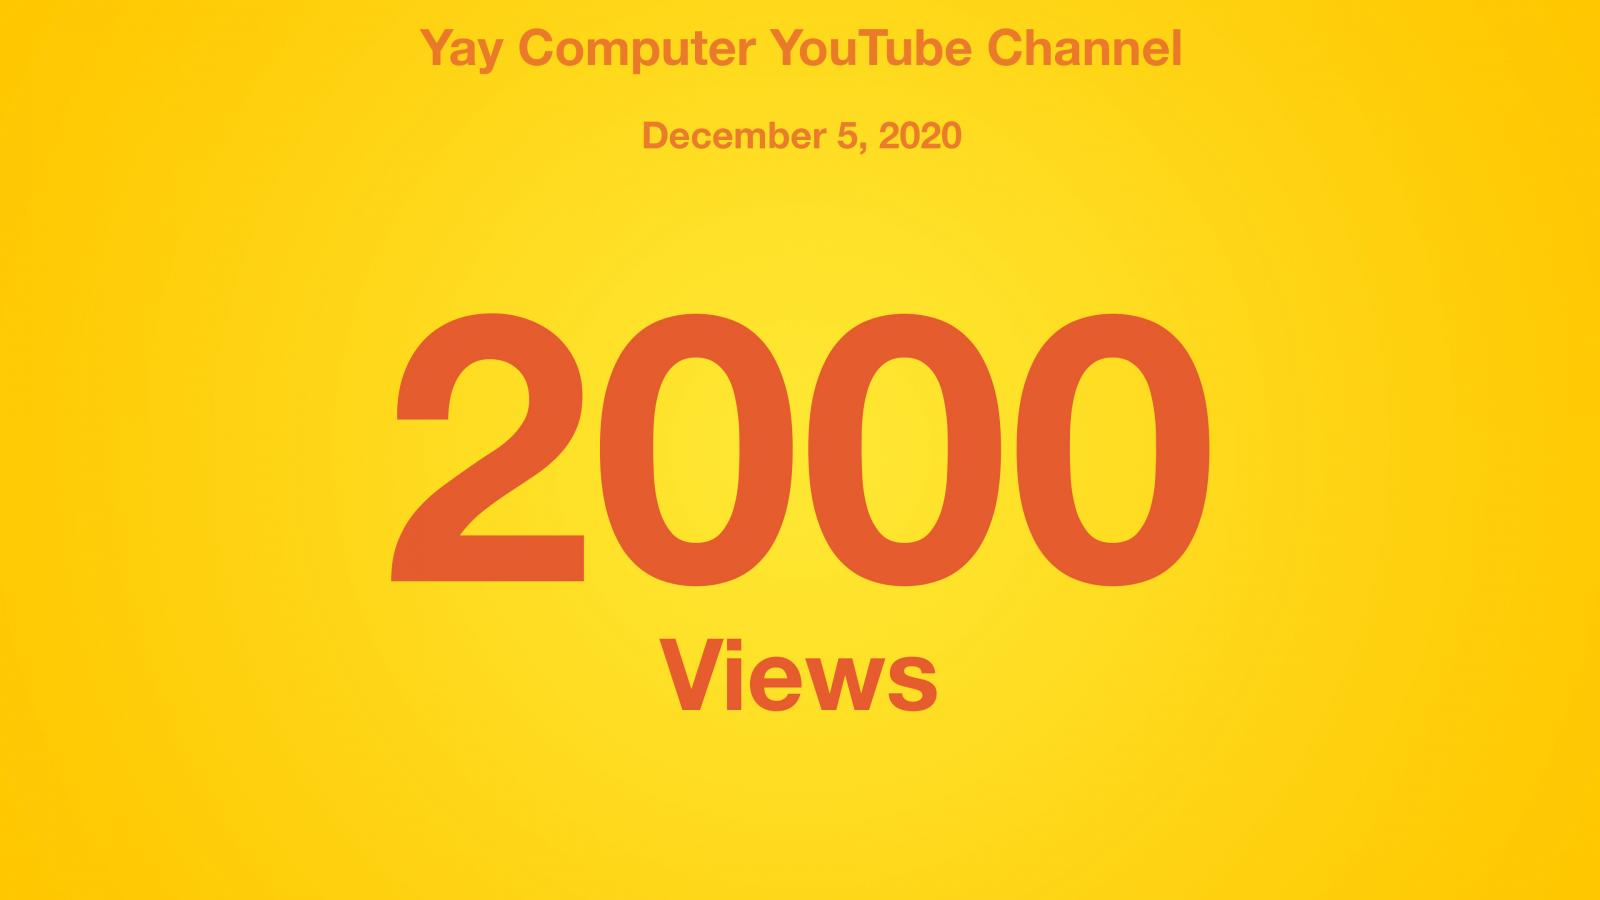 Yay Computer YouTube Channel, December 5, 2020, 2000 Views